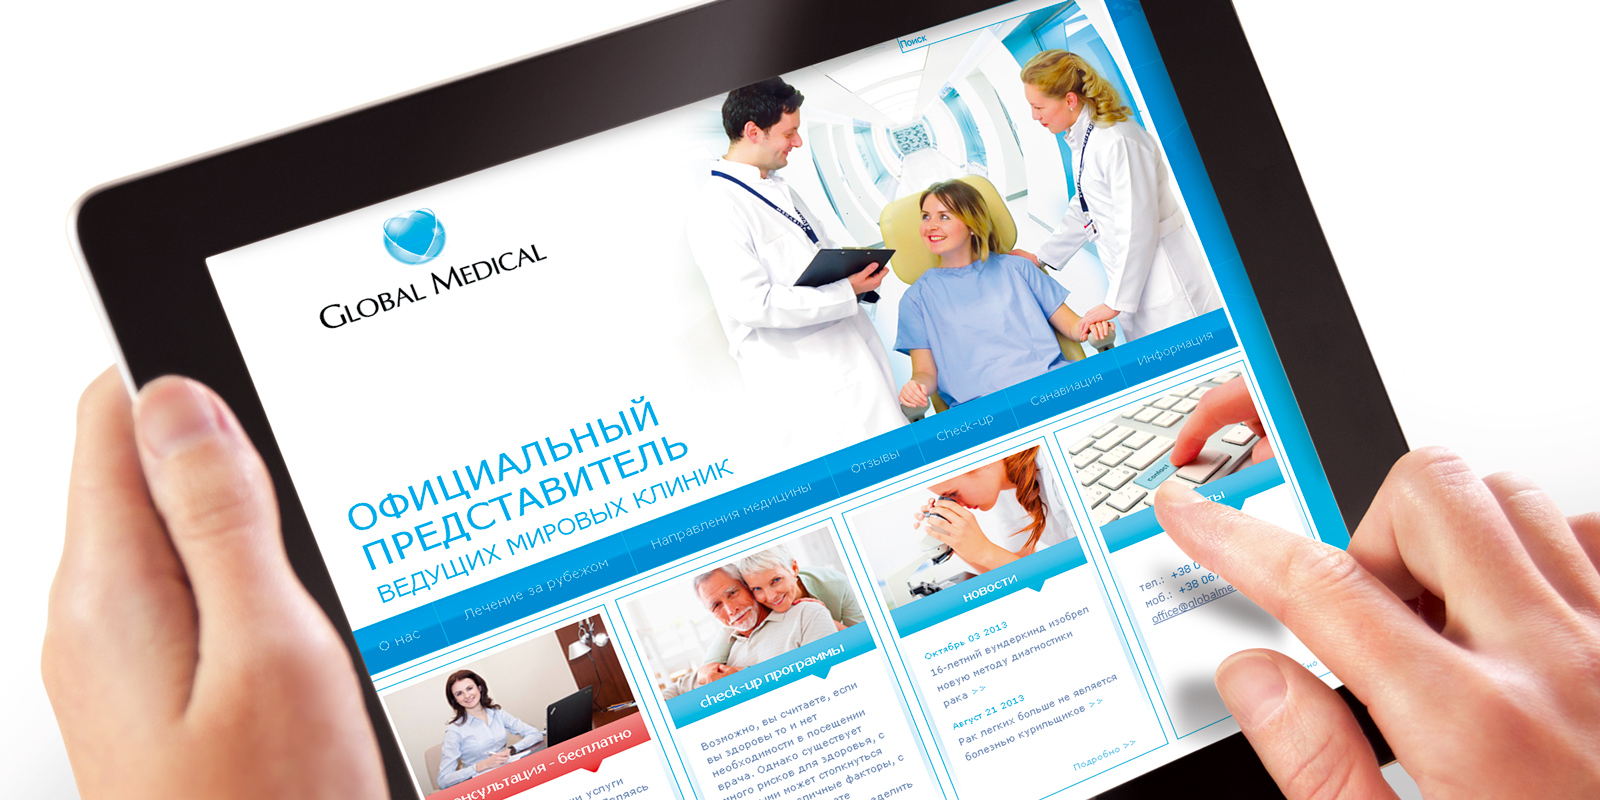 Компания Global Medical;;;;;;Разработка сайта для компании Global Medical;;;;;;<span>Клиент:</span> Компания Global Medical;;;;;;;;;;;;Разработка сайта для компании Global Medical;;;;;; 3 ;;;;;;globalmedical.com.ua